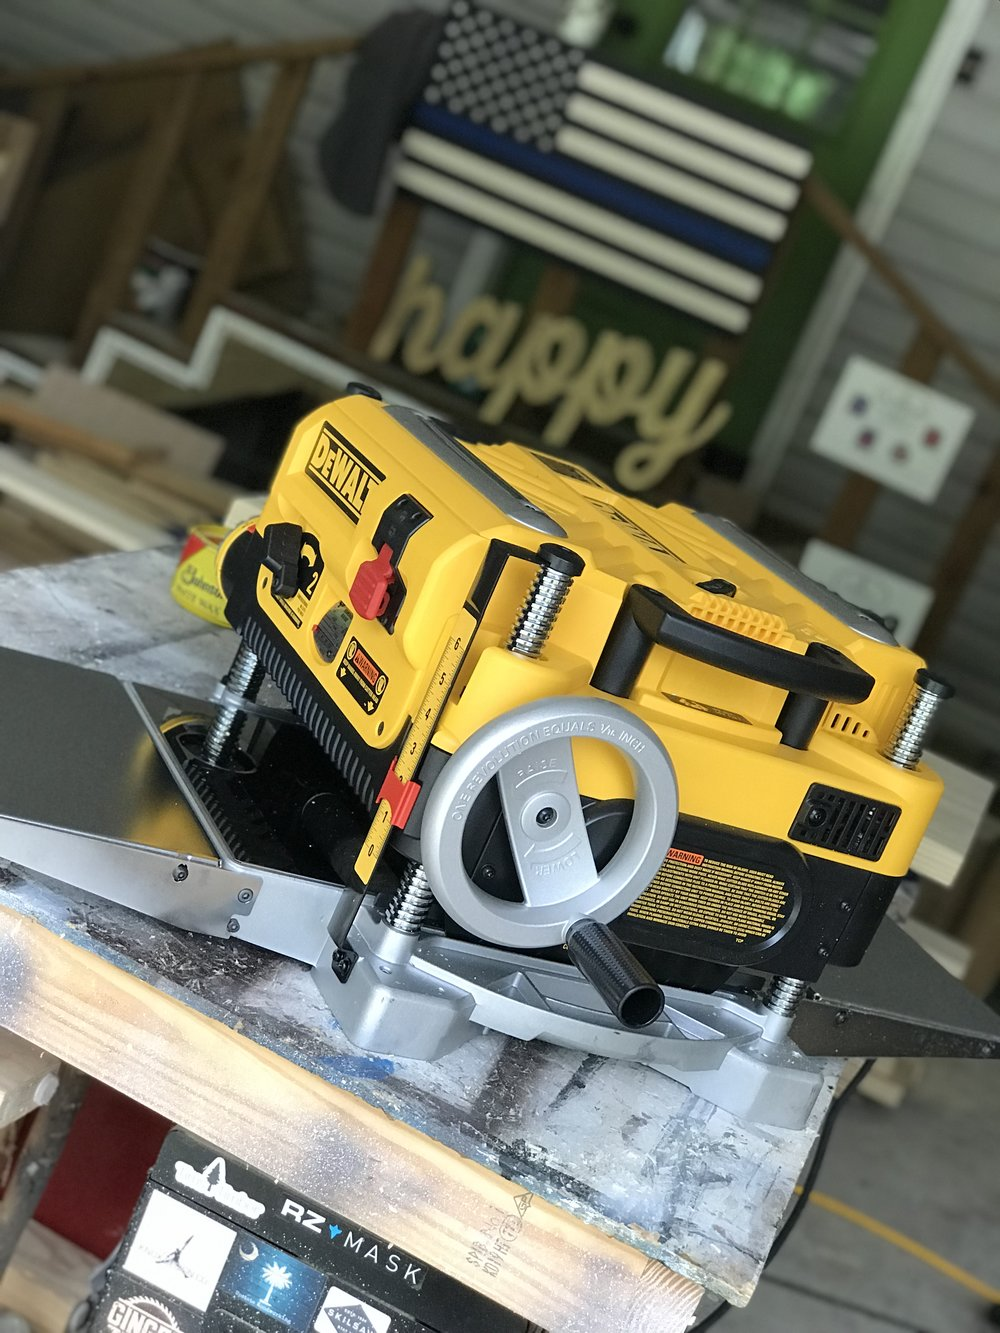 dewalt 735x side.jpg